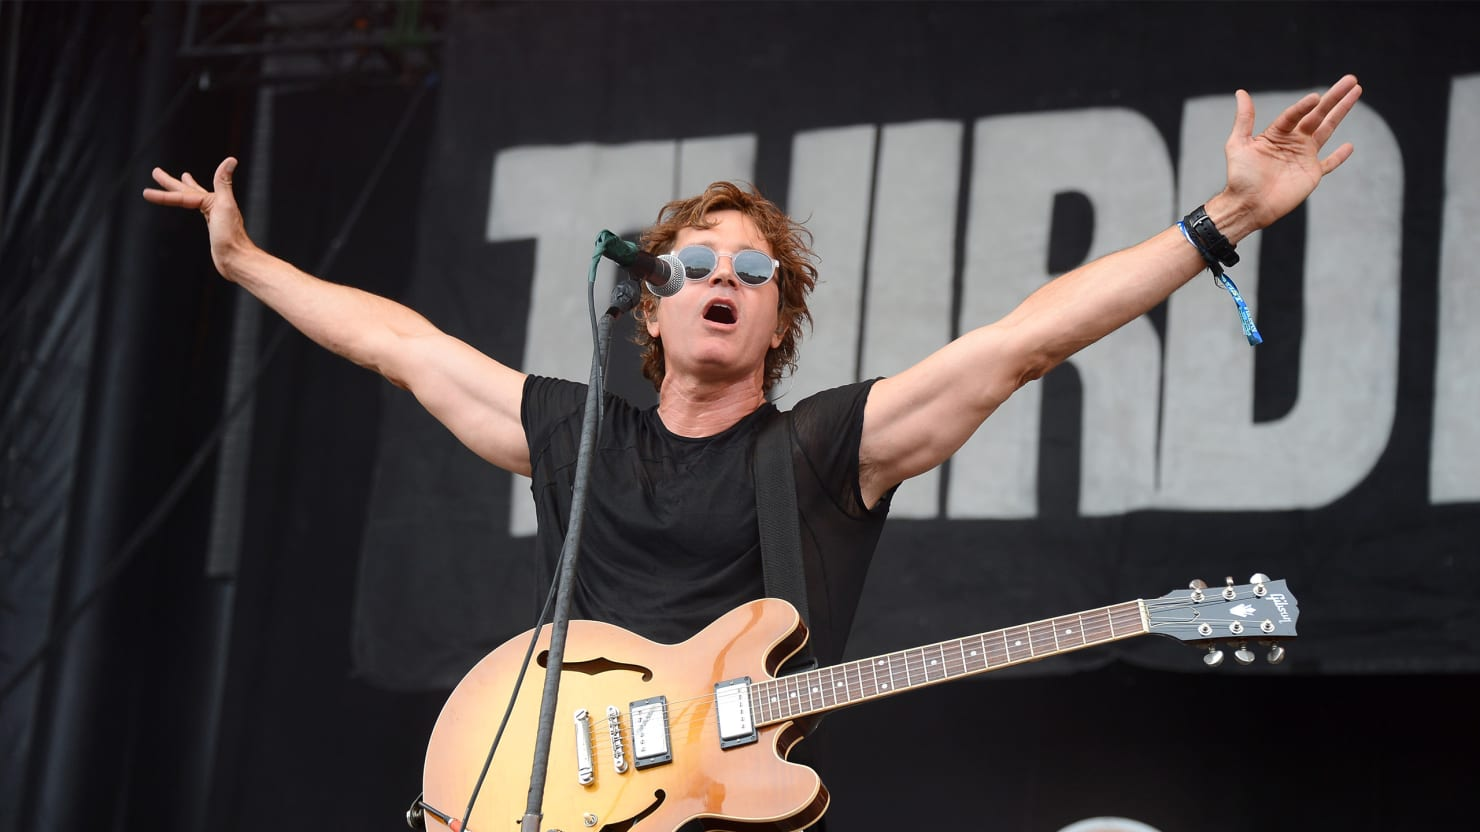 Koch Stephan that from third eye blind has a plan to fix america